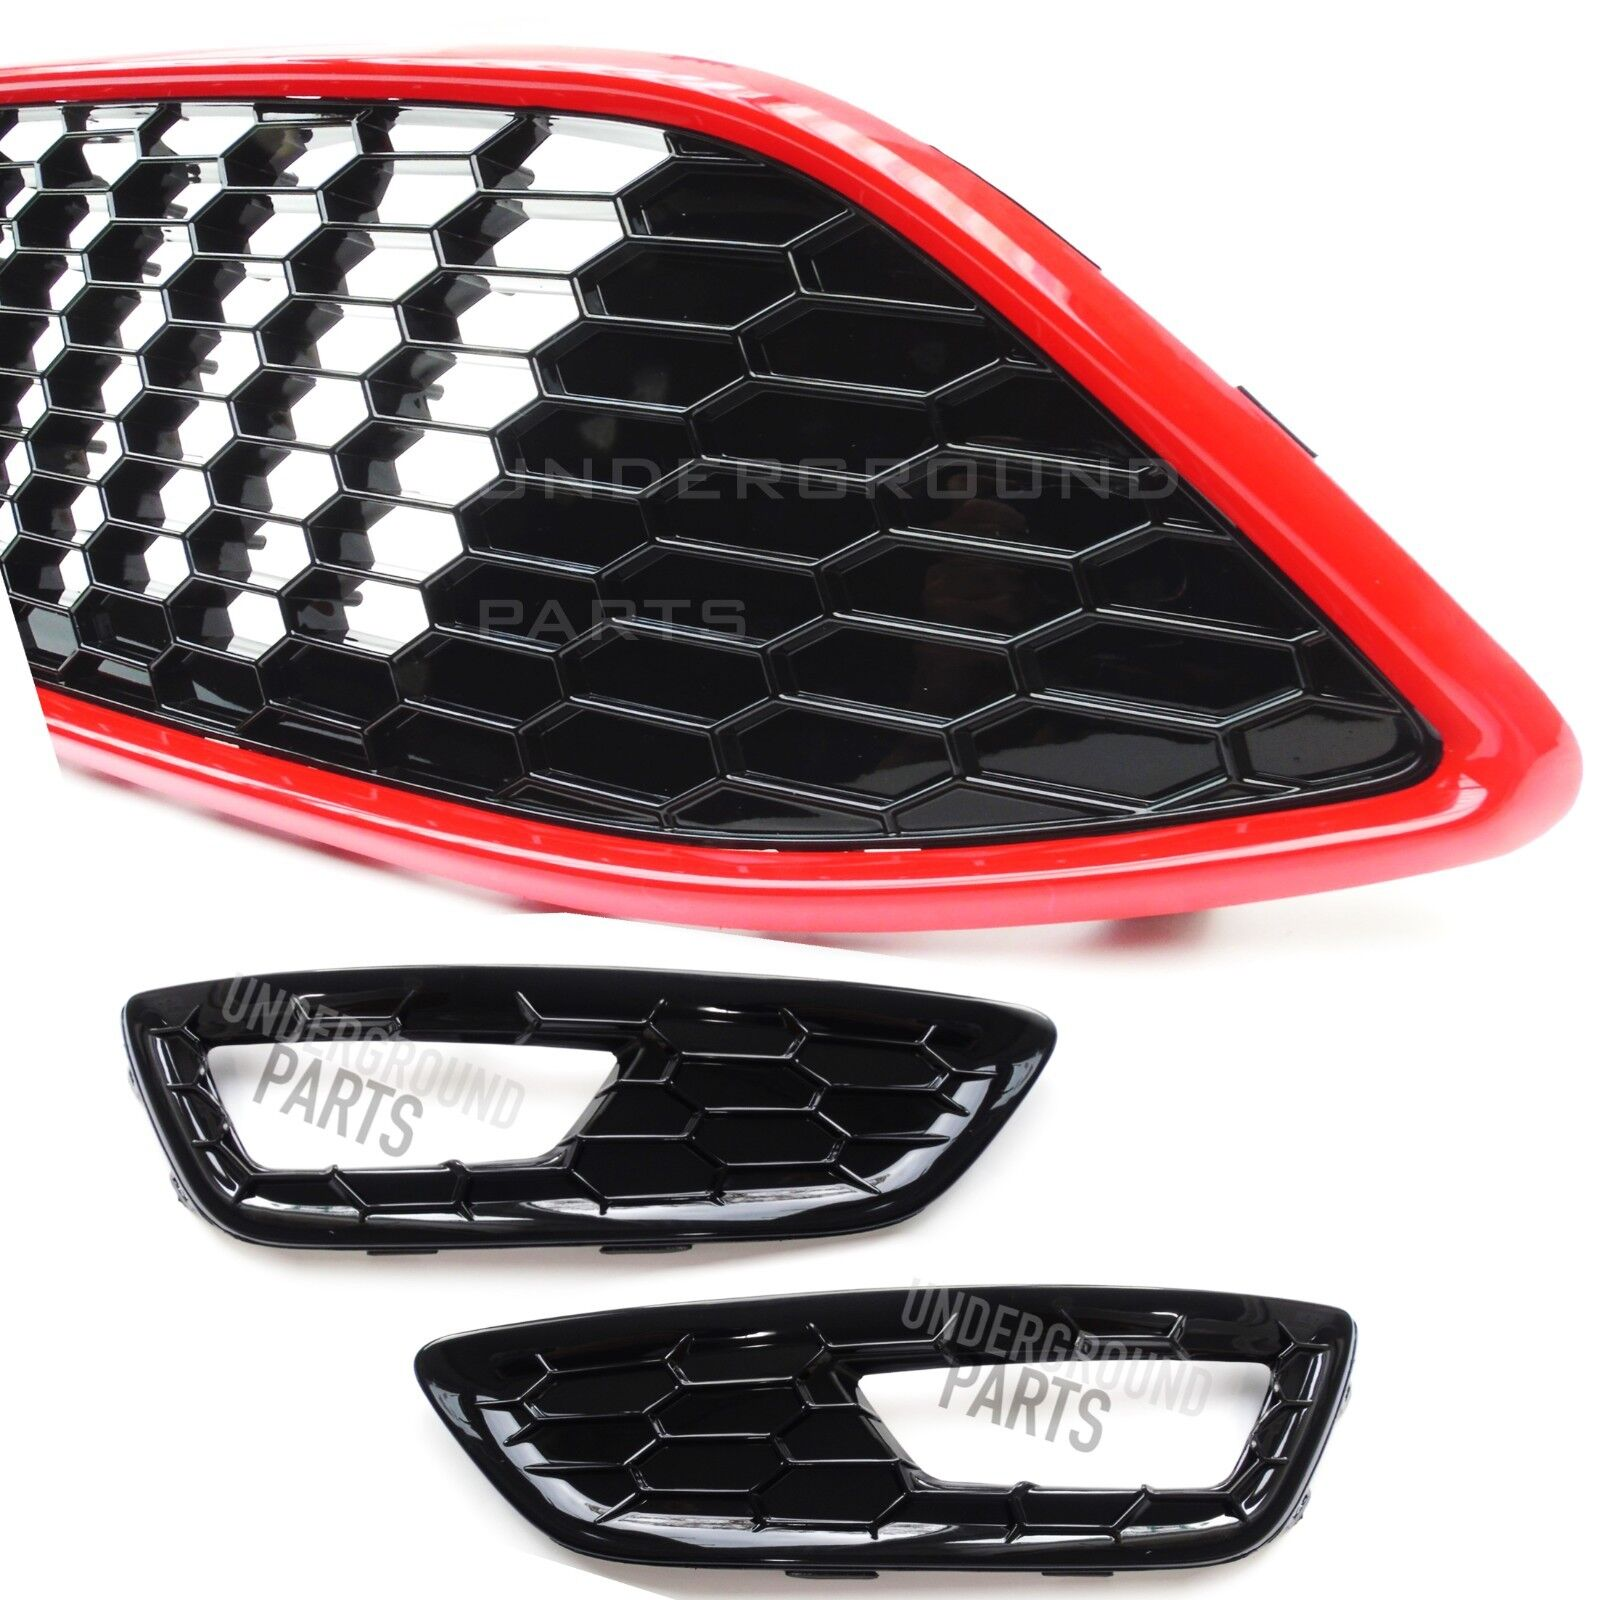 Underground Parts F-FC-27 Gloss Black Honeycomb Front Bumper Lower Grilles /& Fog Light Surrounds